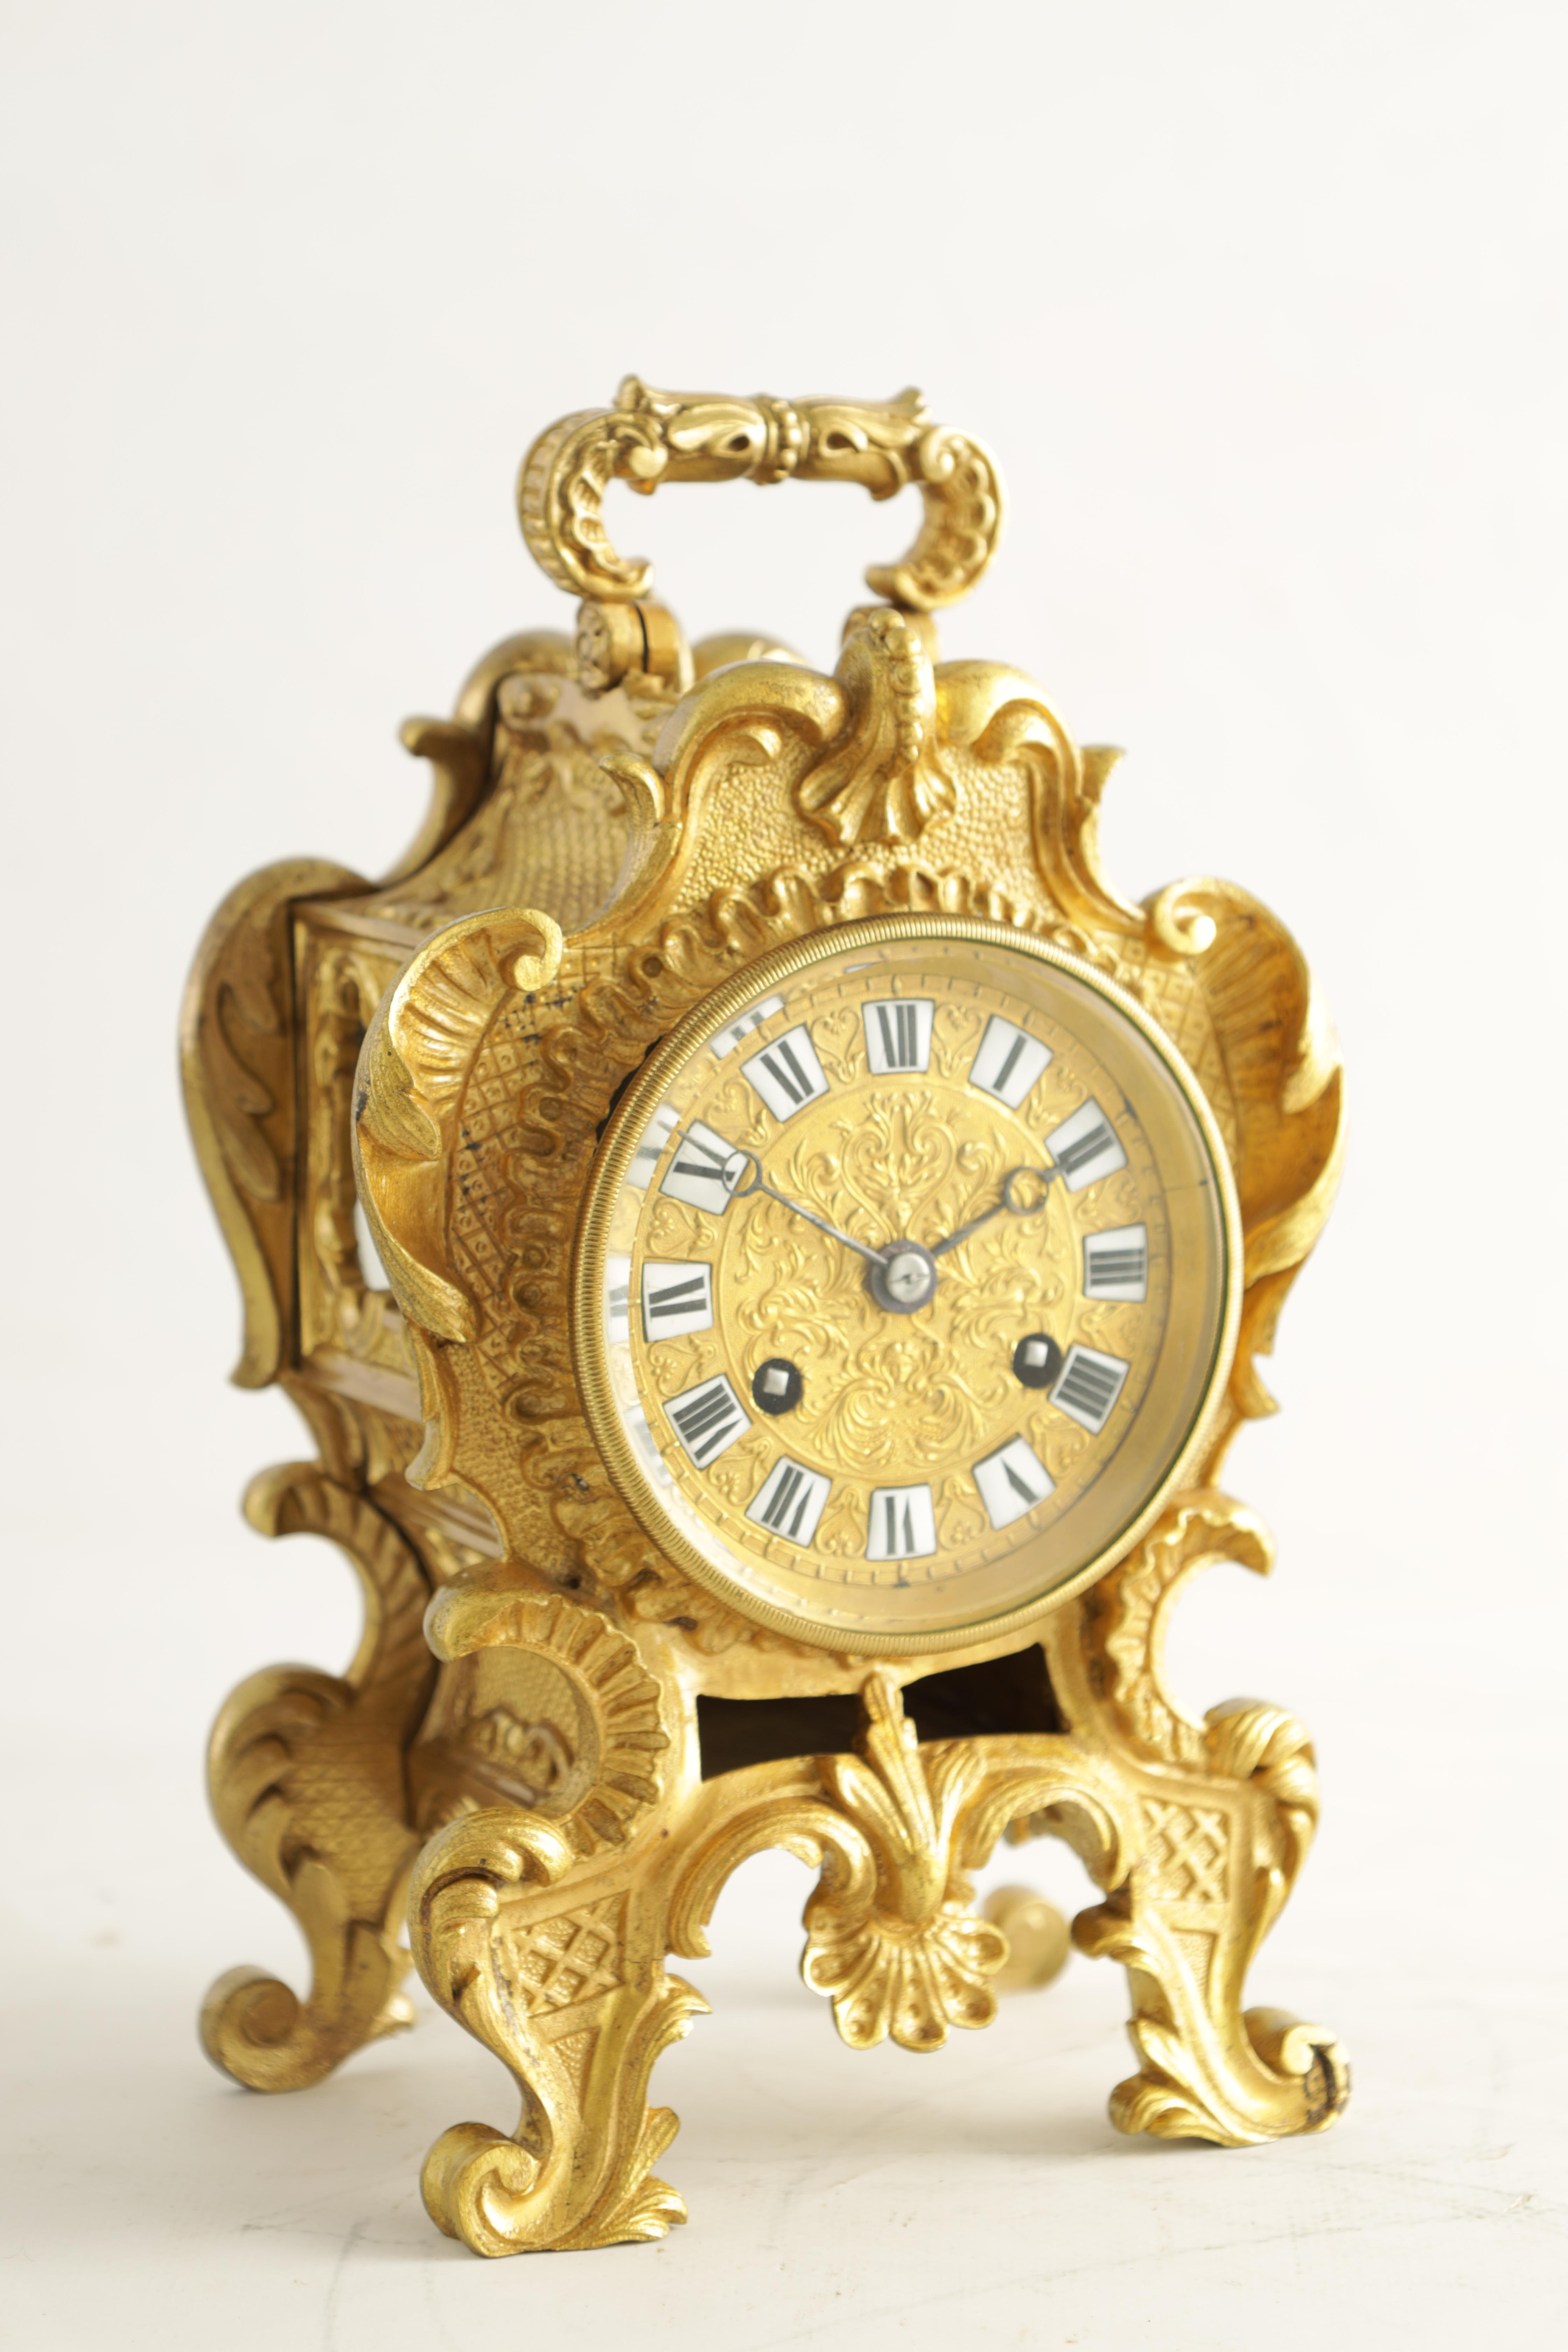 PAUL GARNIER, PARIS A MID 19TH CENTURY FRENCH TRAVELLING MANTEL CLOCK the gilt bronze rococo style - Image 7 of 13